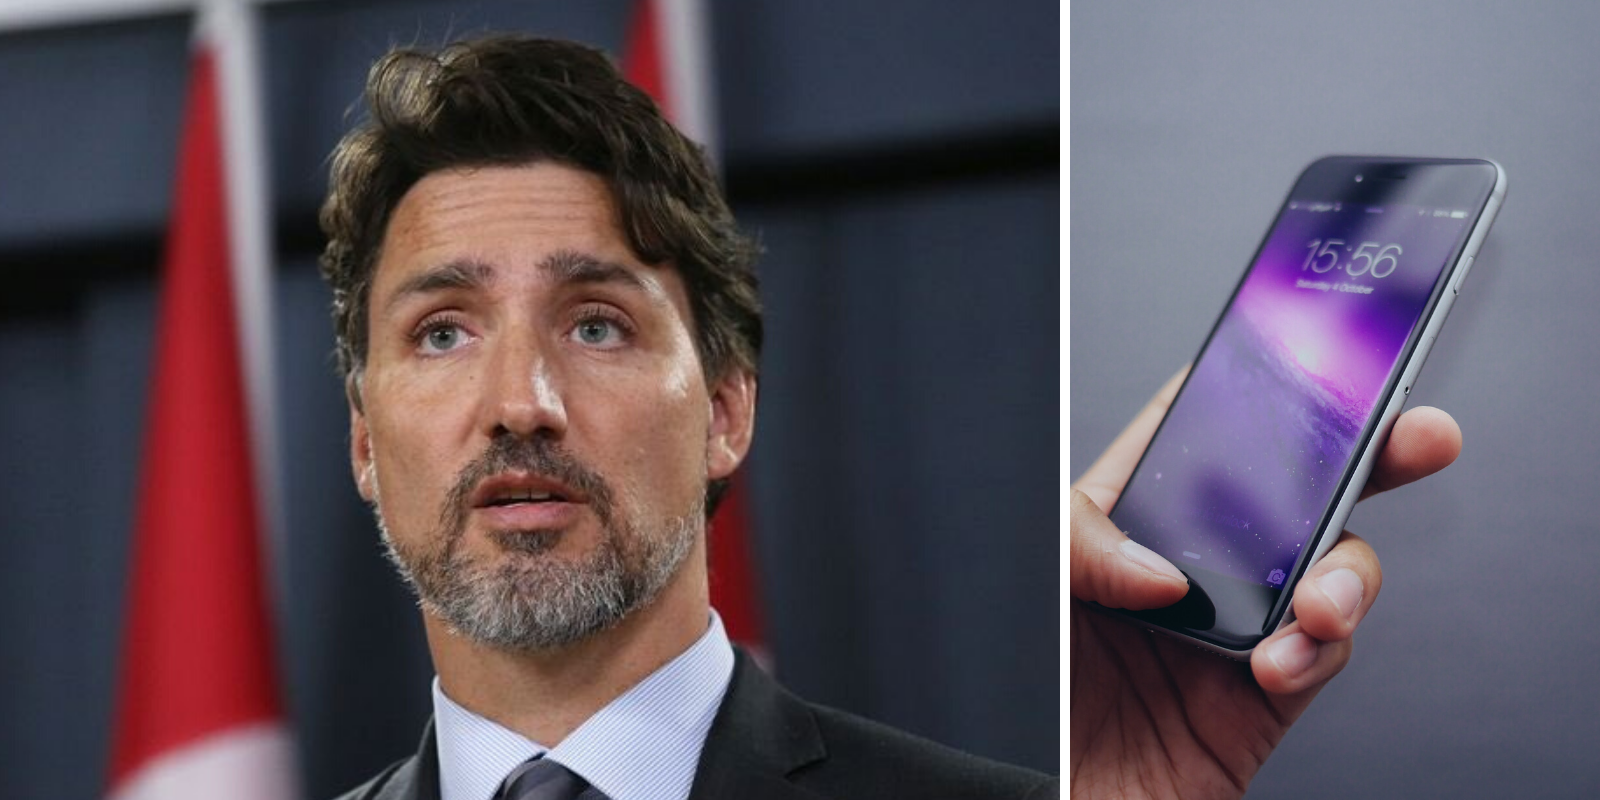 Trudeau says tracking Canadians with their cell phones 'on the table'